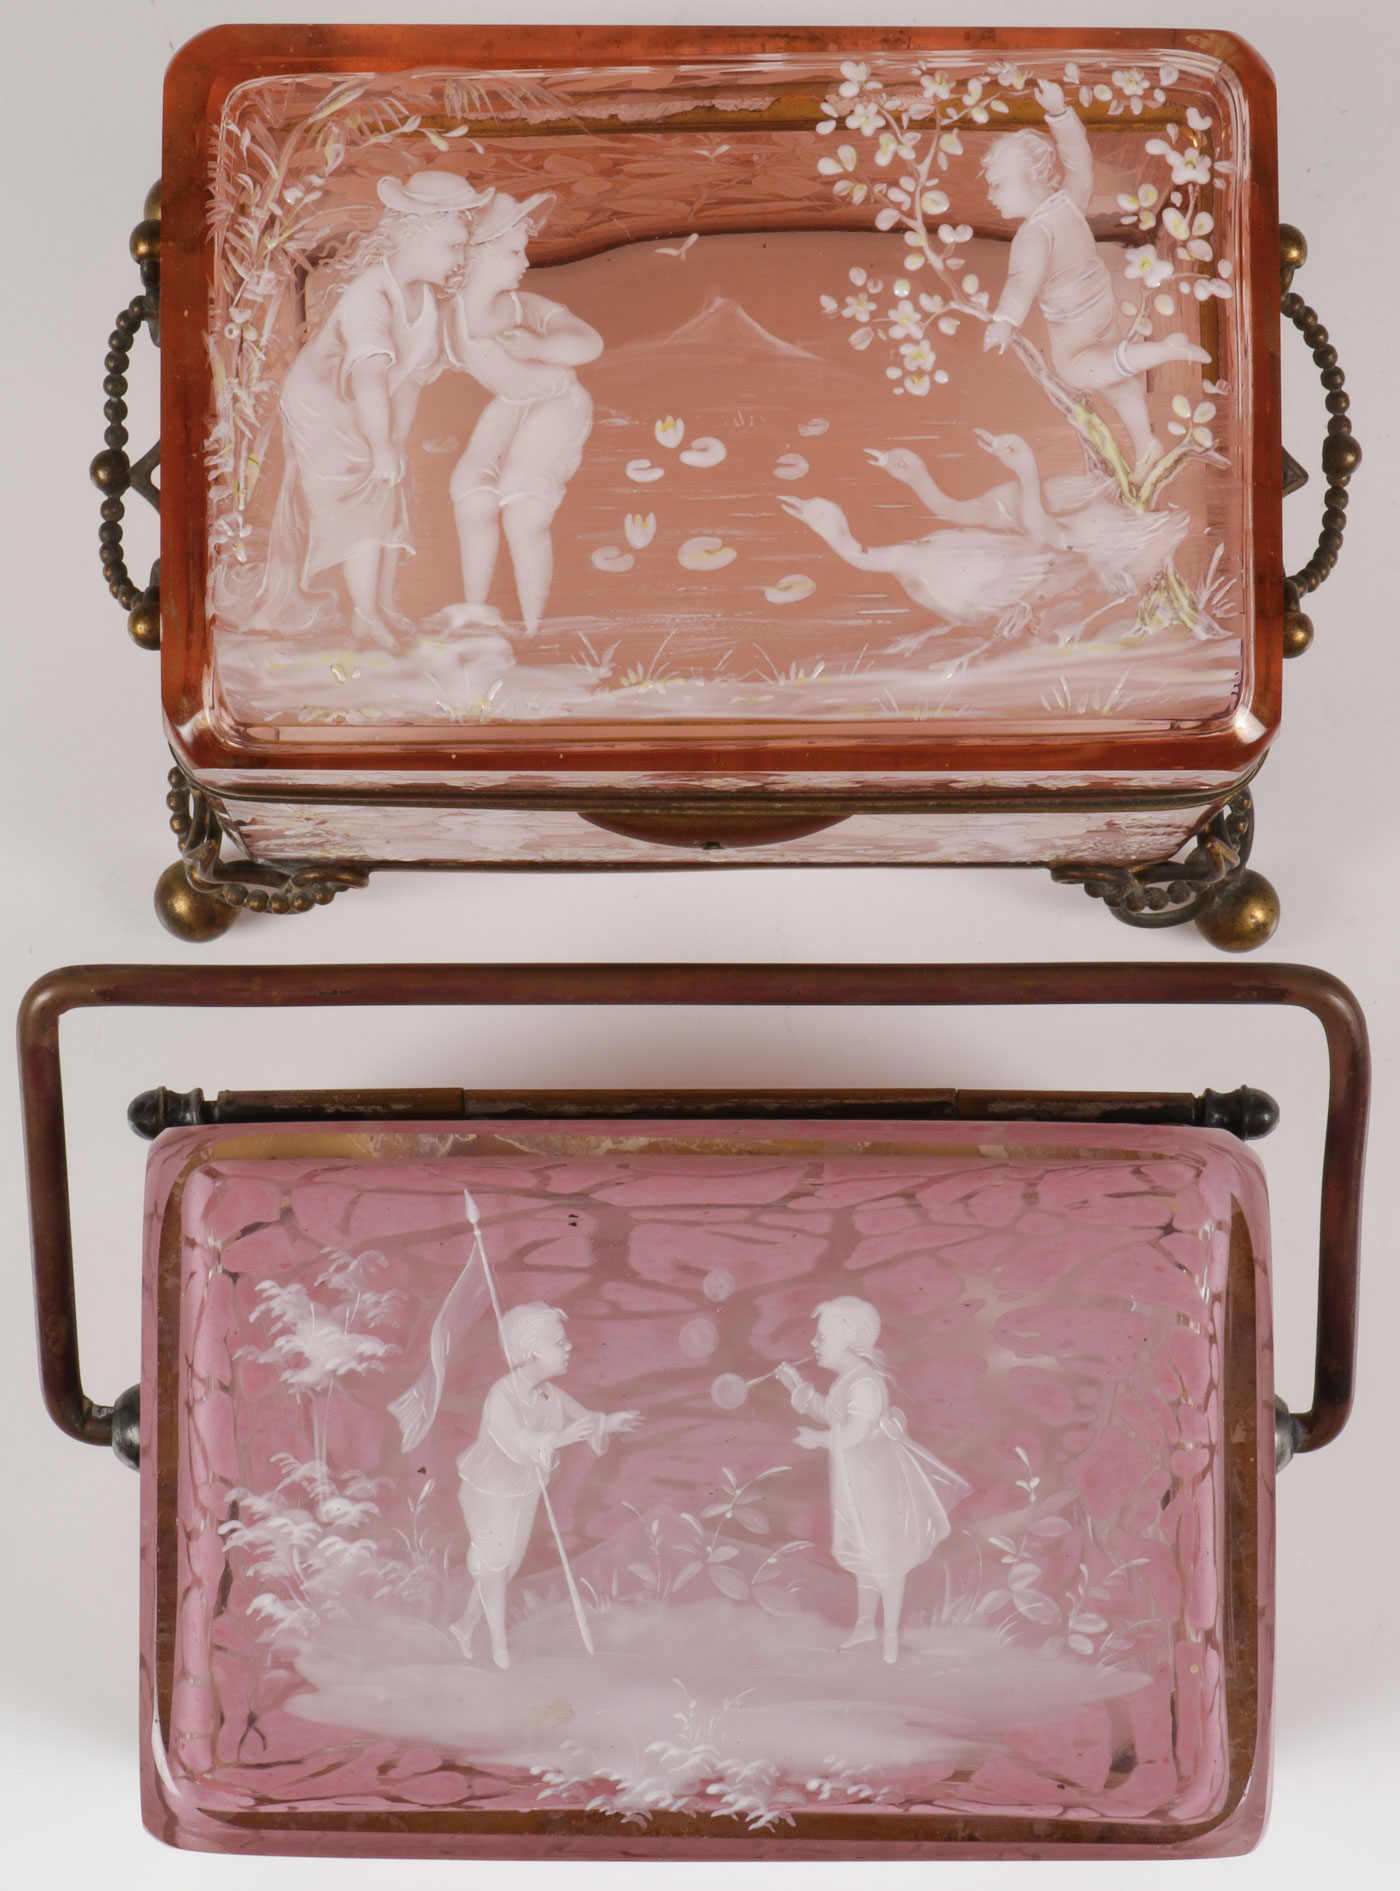 Lot 42 - A PAIR OF MARY GREGORY BOXES